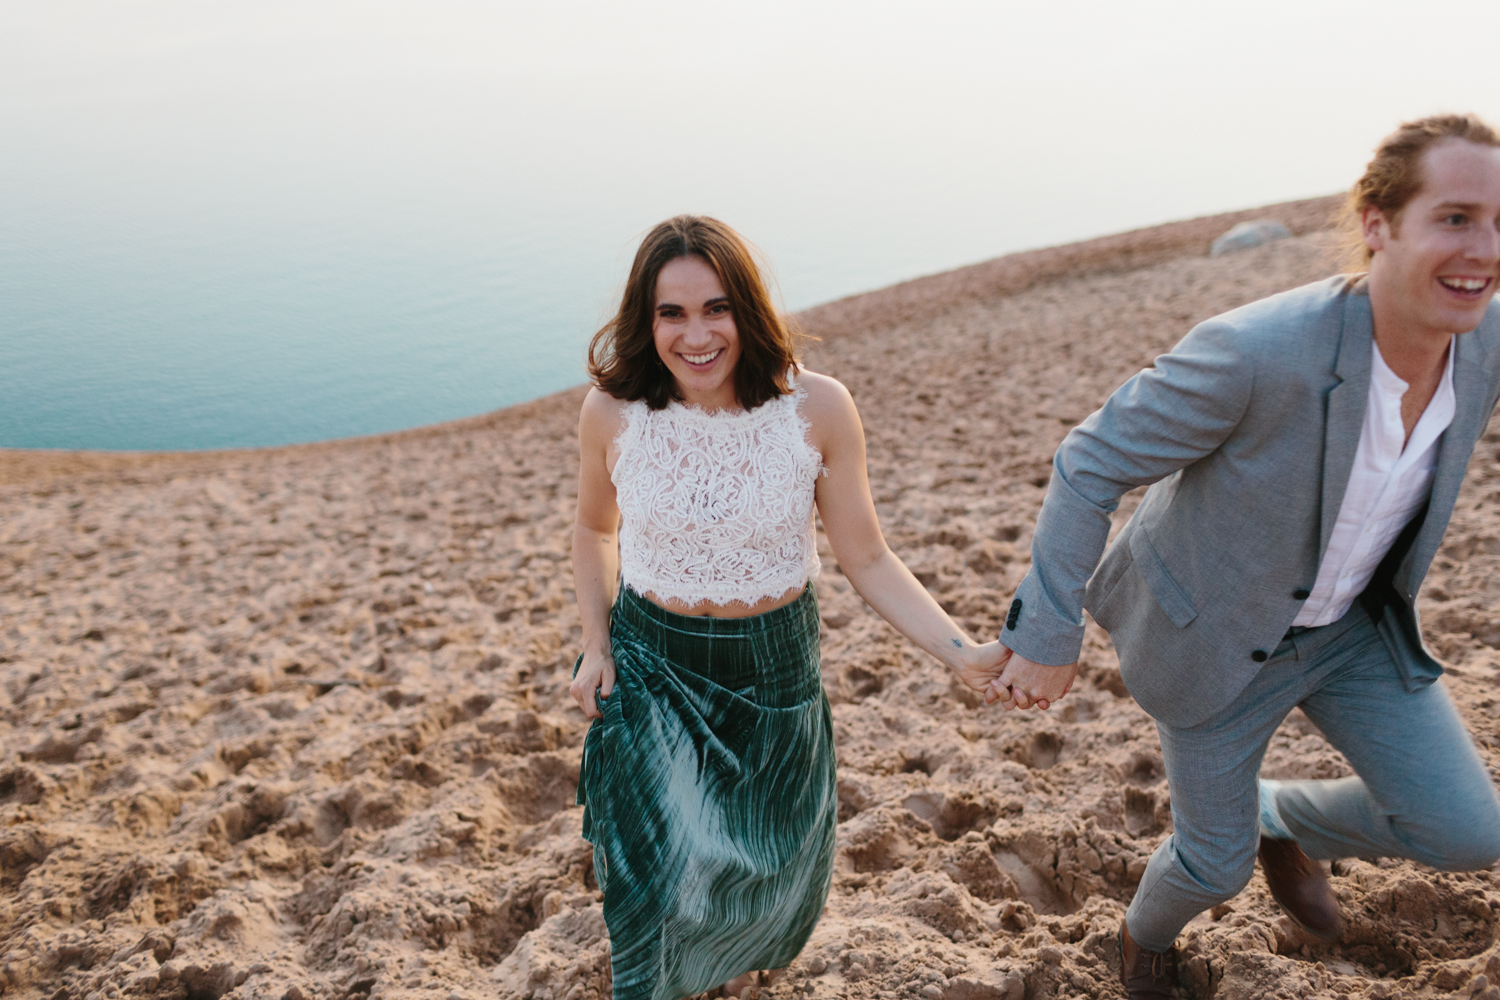 Sleeping Bear Dunes Elopement Wedding Photography by Mae Stier Northern Michigan Photographer-035.jpg